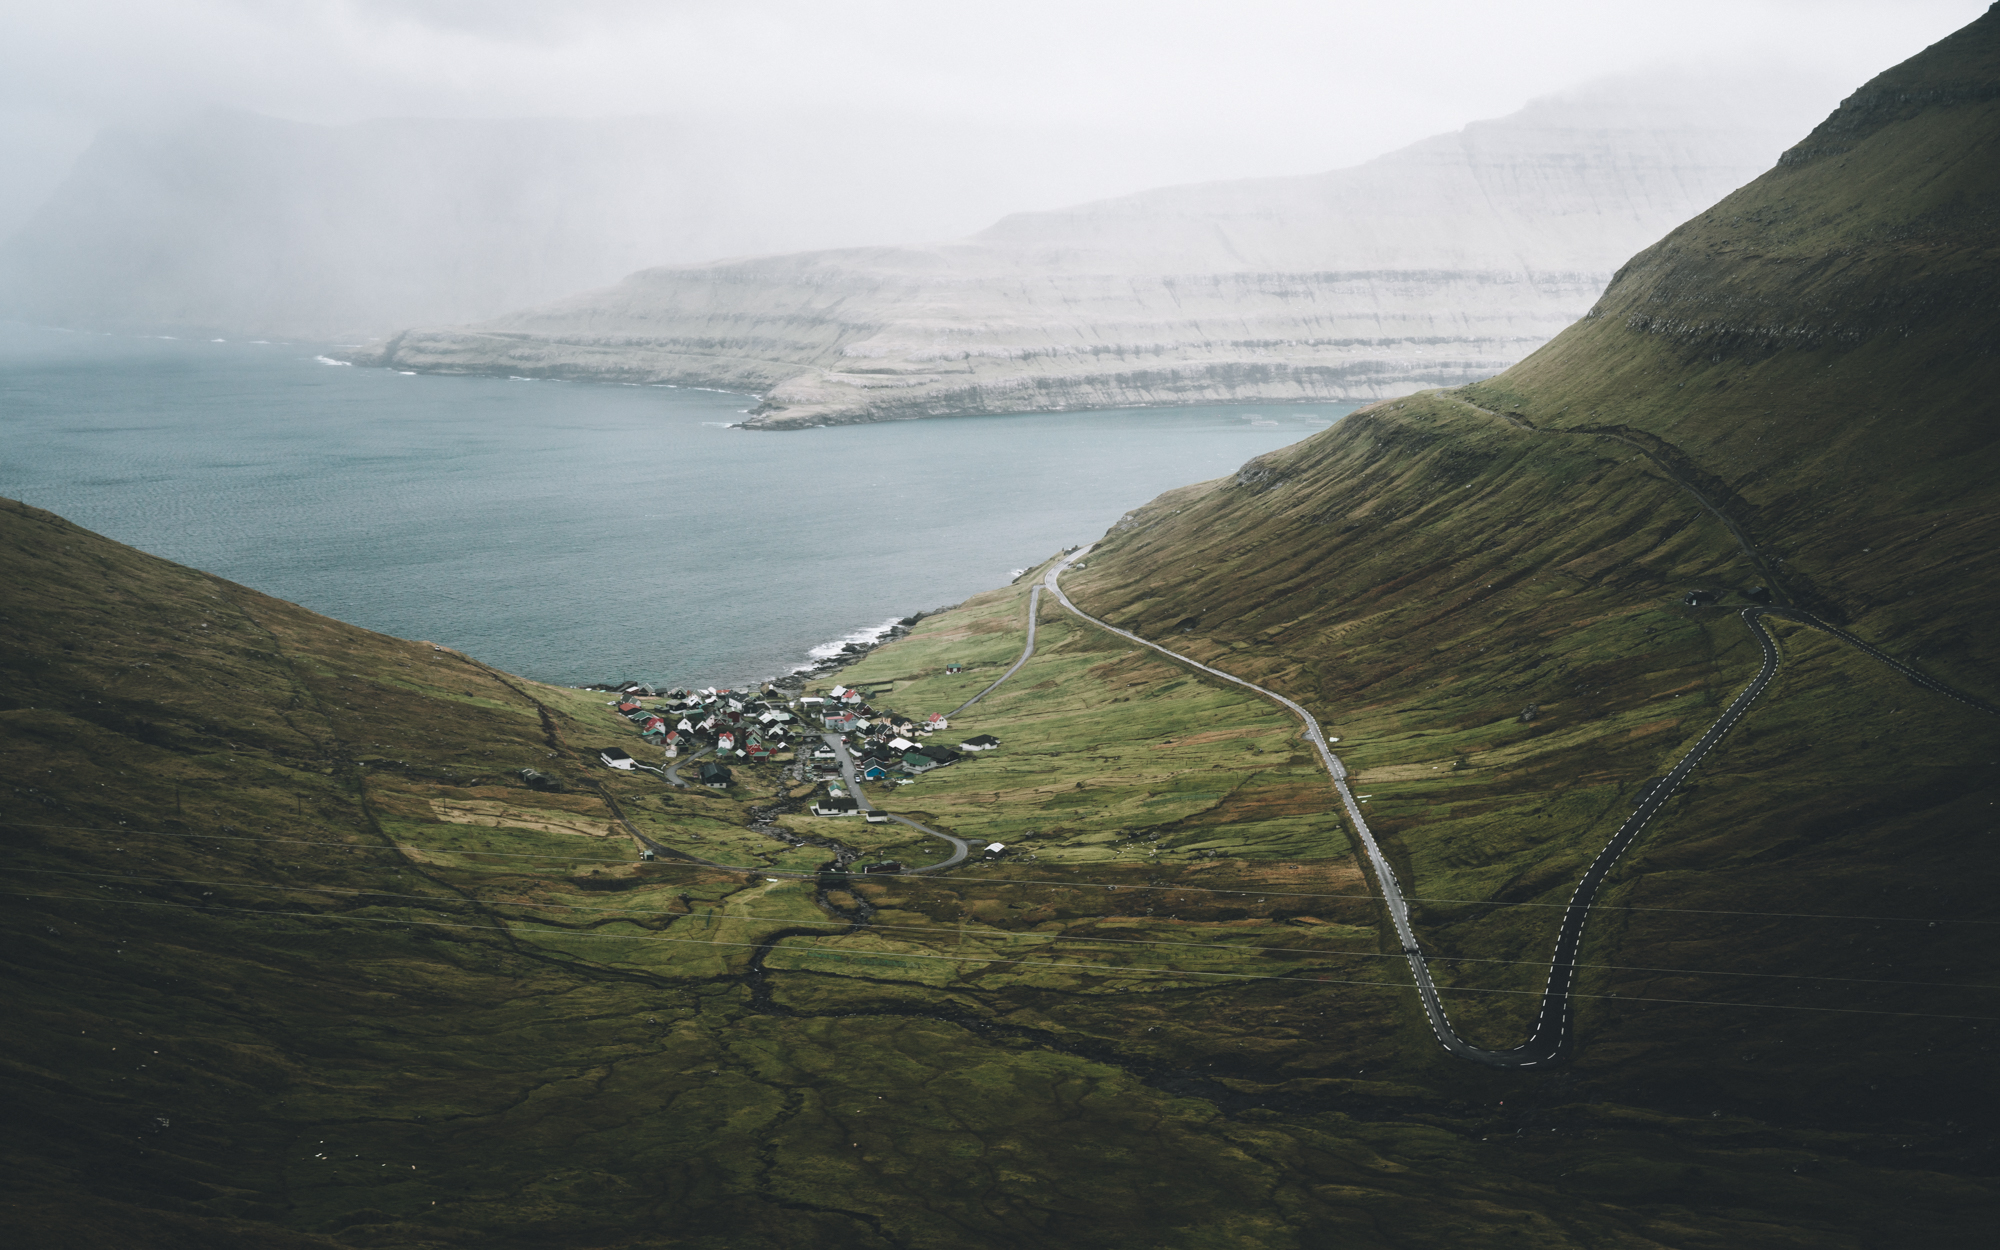 faroe-islands-62.jpg